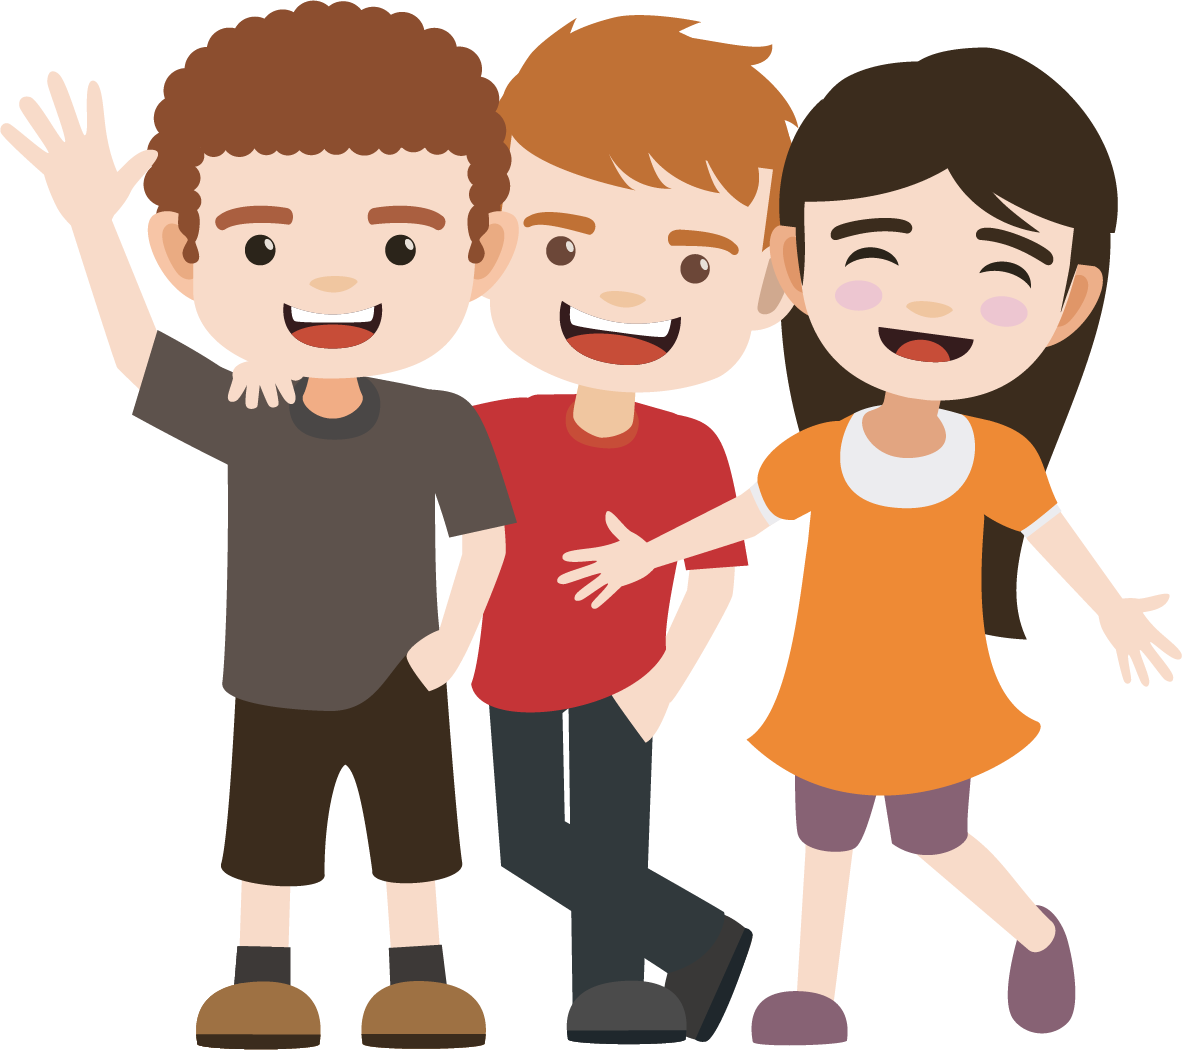 Friend clipart animated. Friendship clip art is